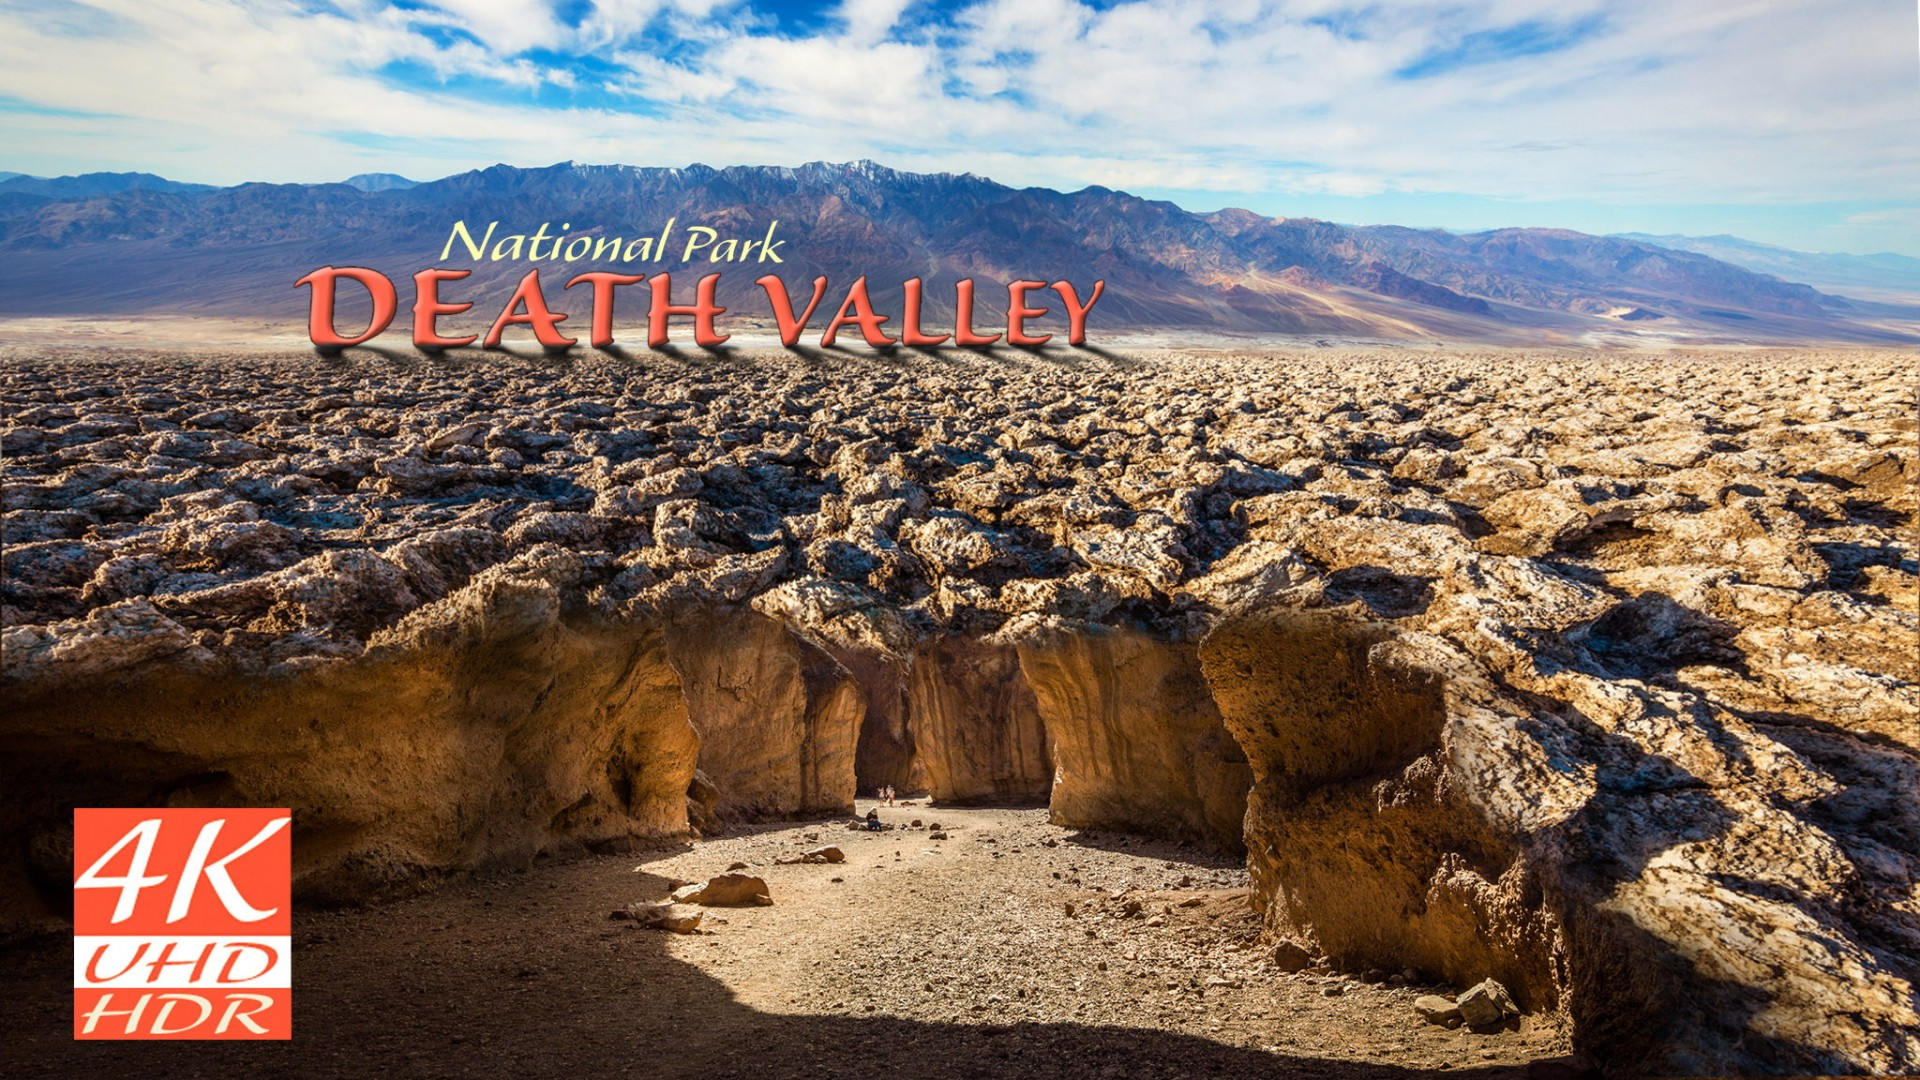 death valley national park nature documentary movie in 4k proartinc